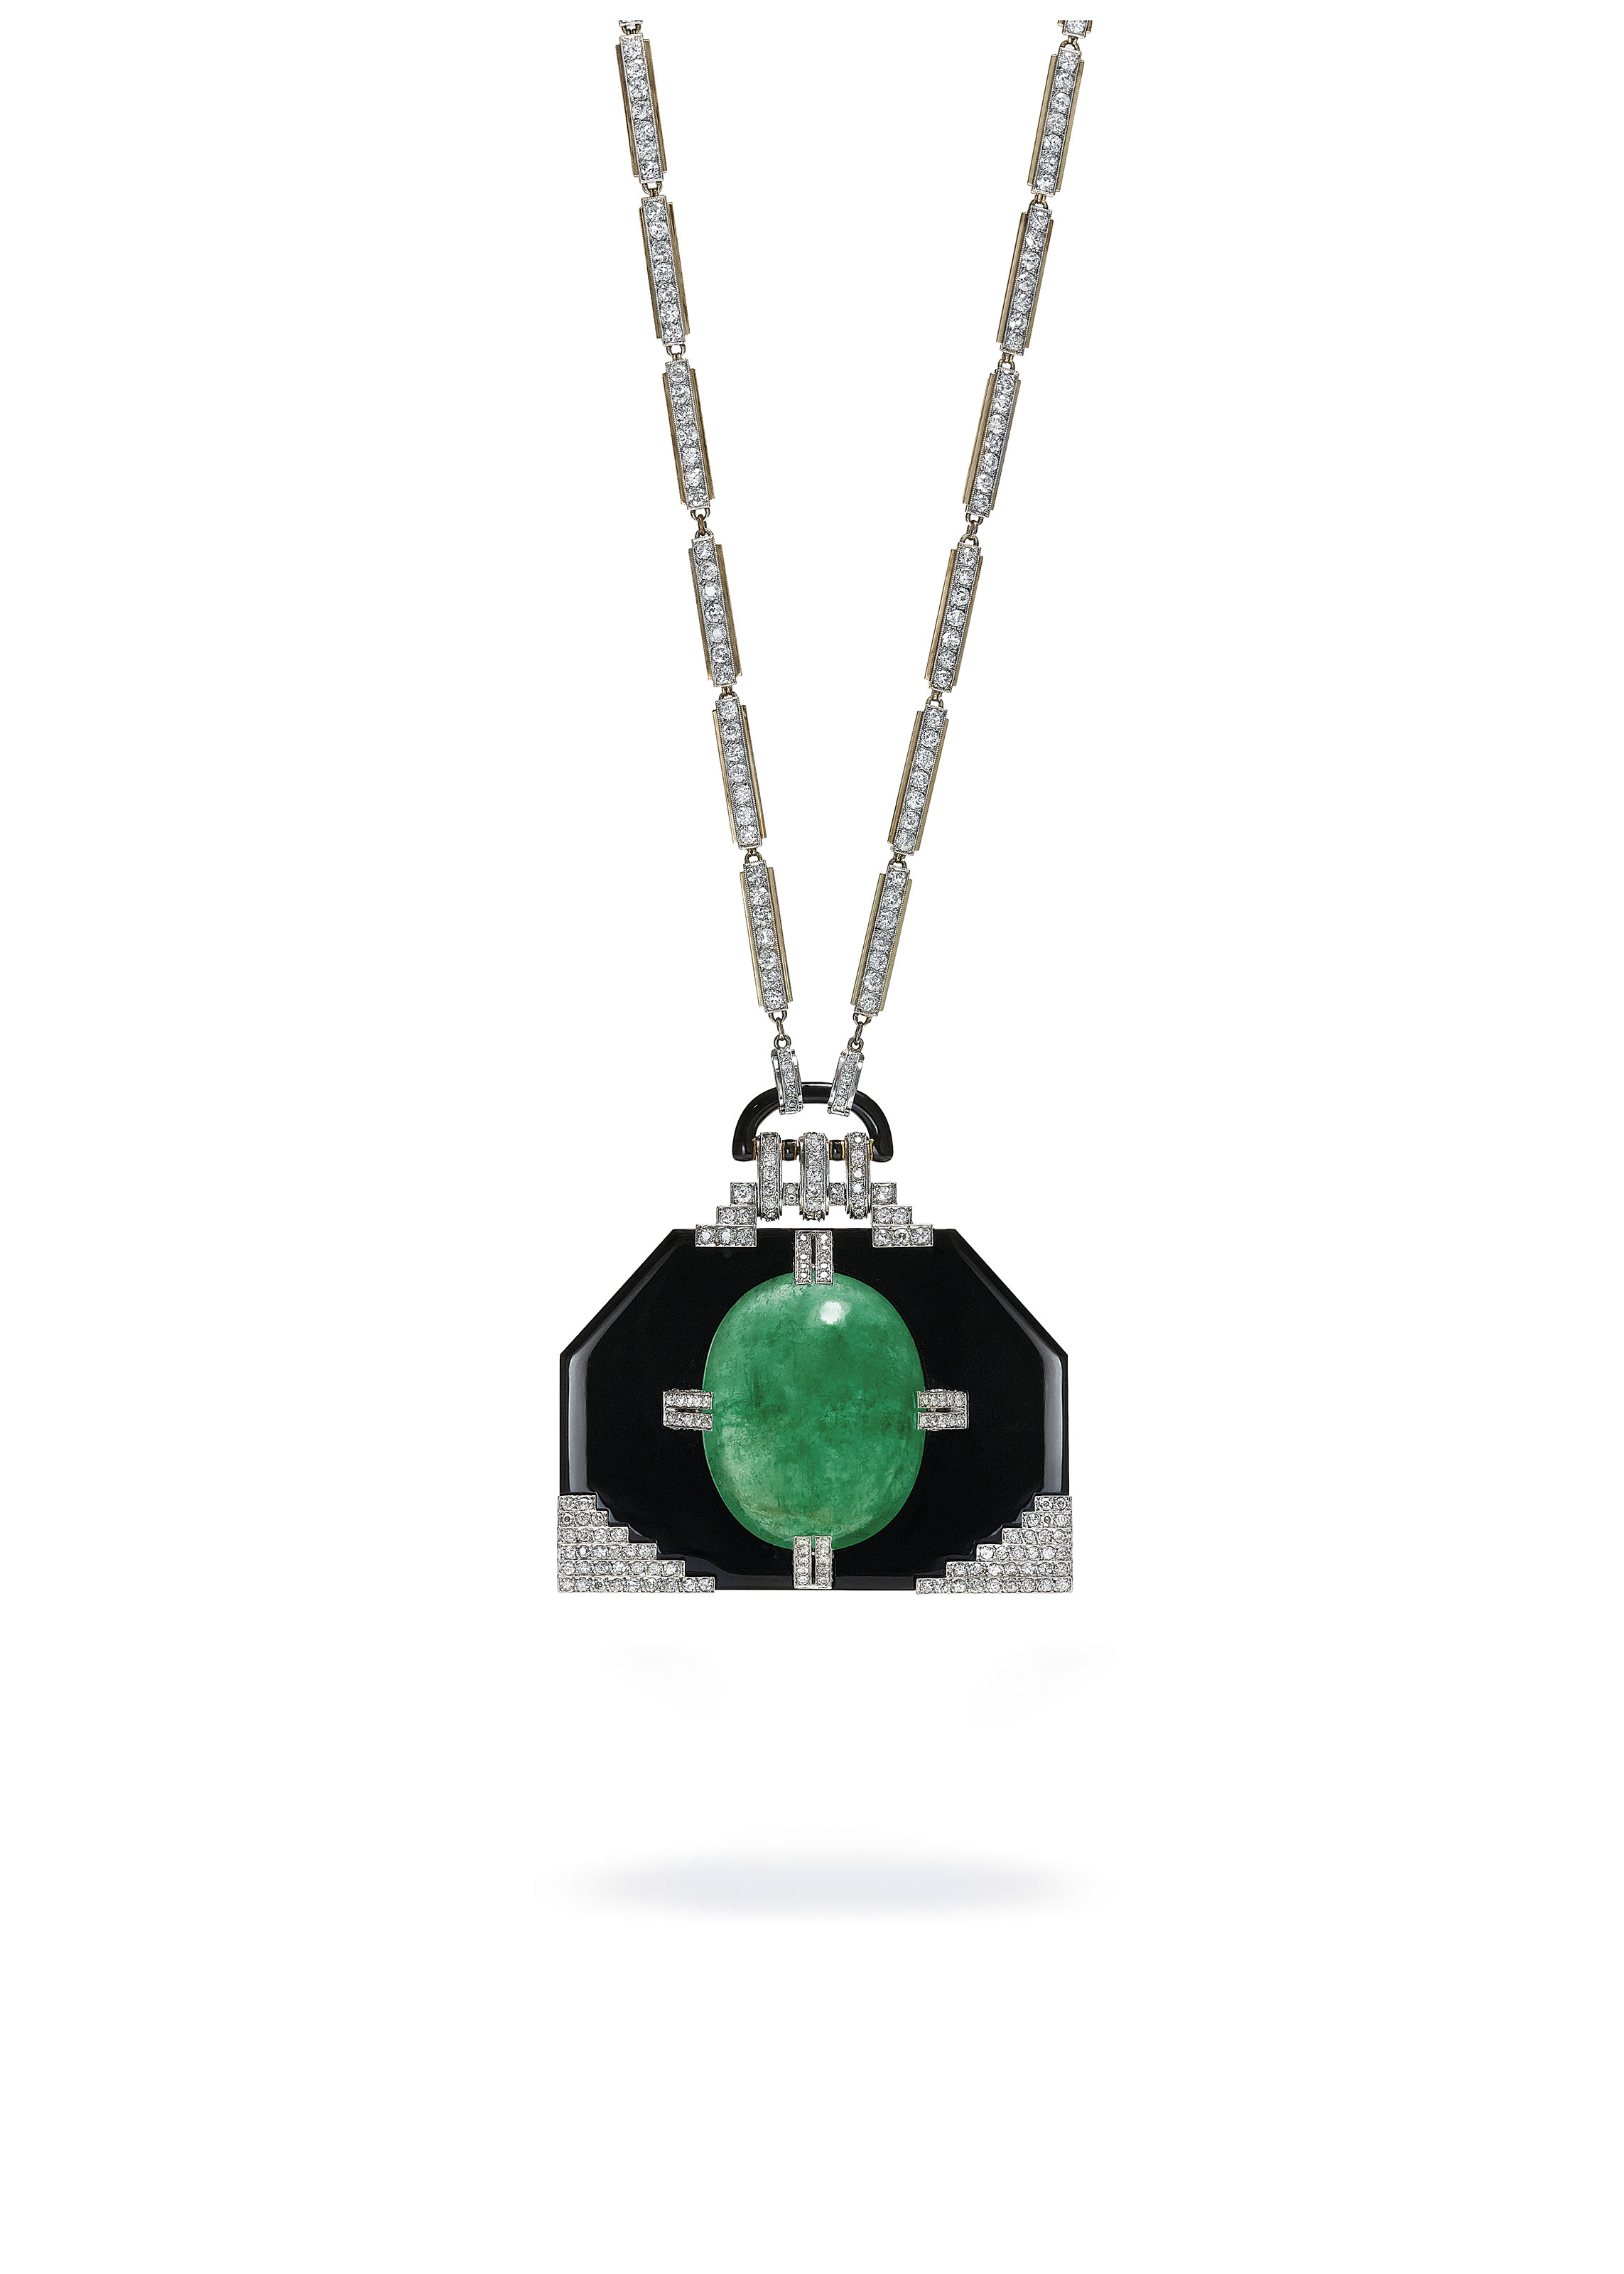 AN IMPORTANT EMERALD, ONYX AND DIAMOND PENDENT NECKLACE, BY GEORGES FOUQUET